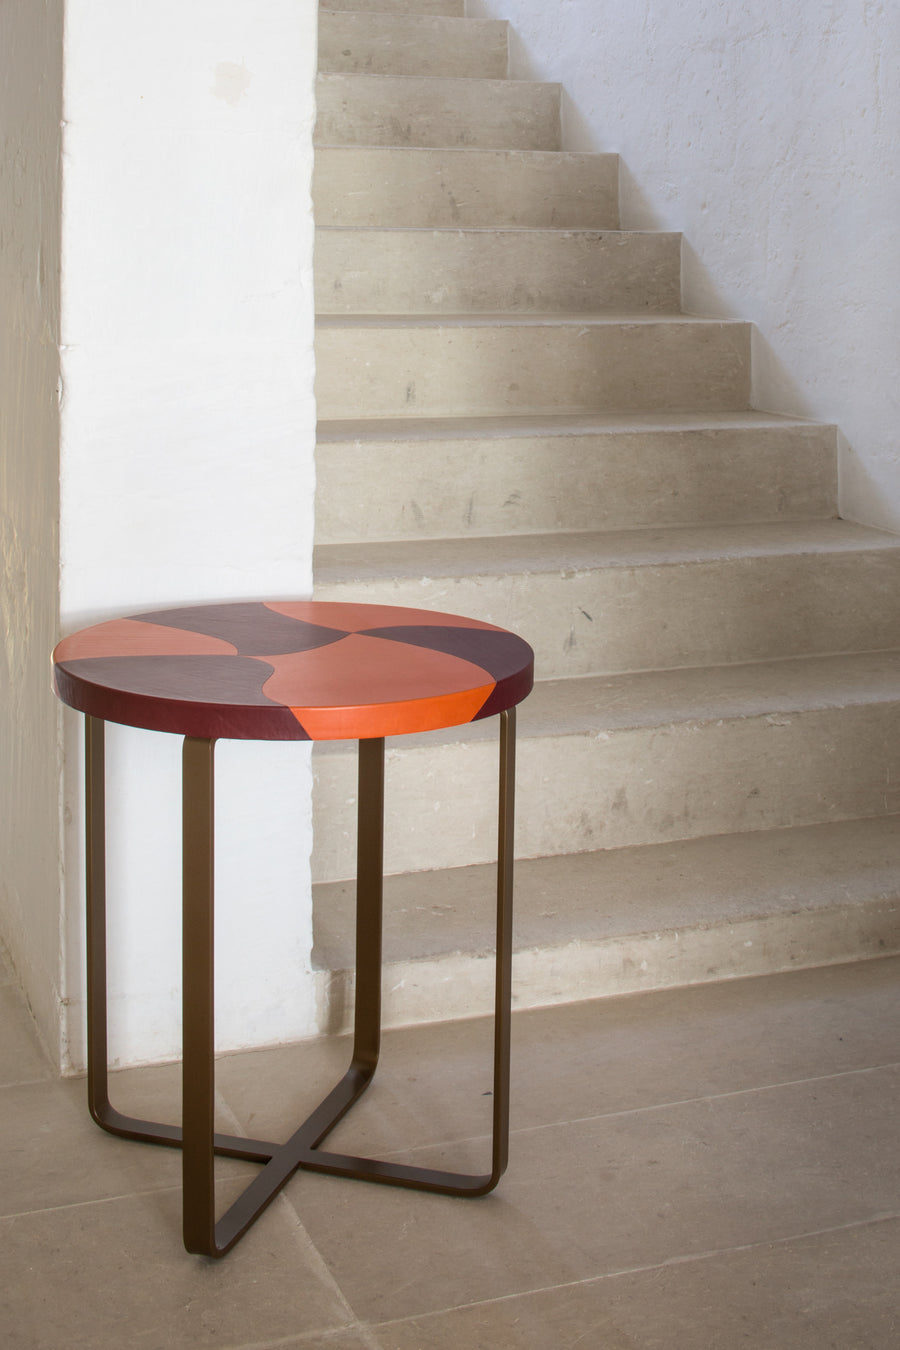 TIGRE Inlaid Leather Top Side Table by Nestor Perkal for Oscar Maschera